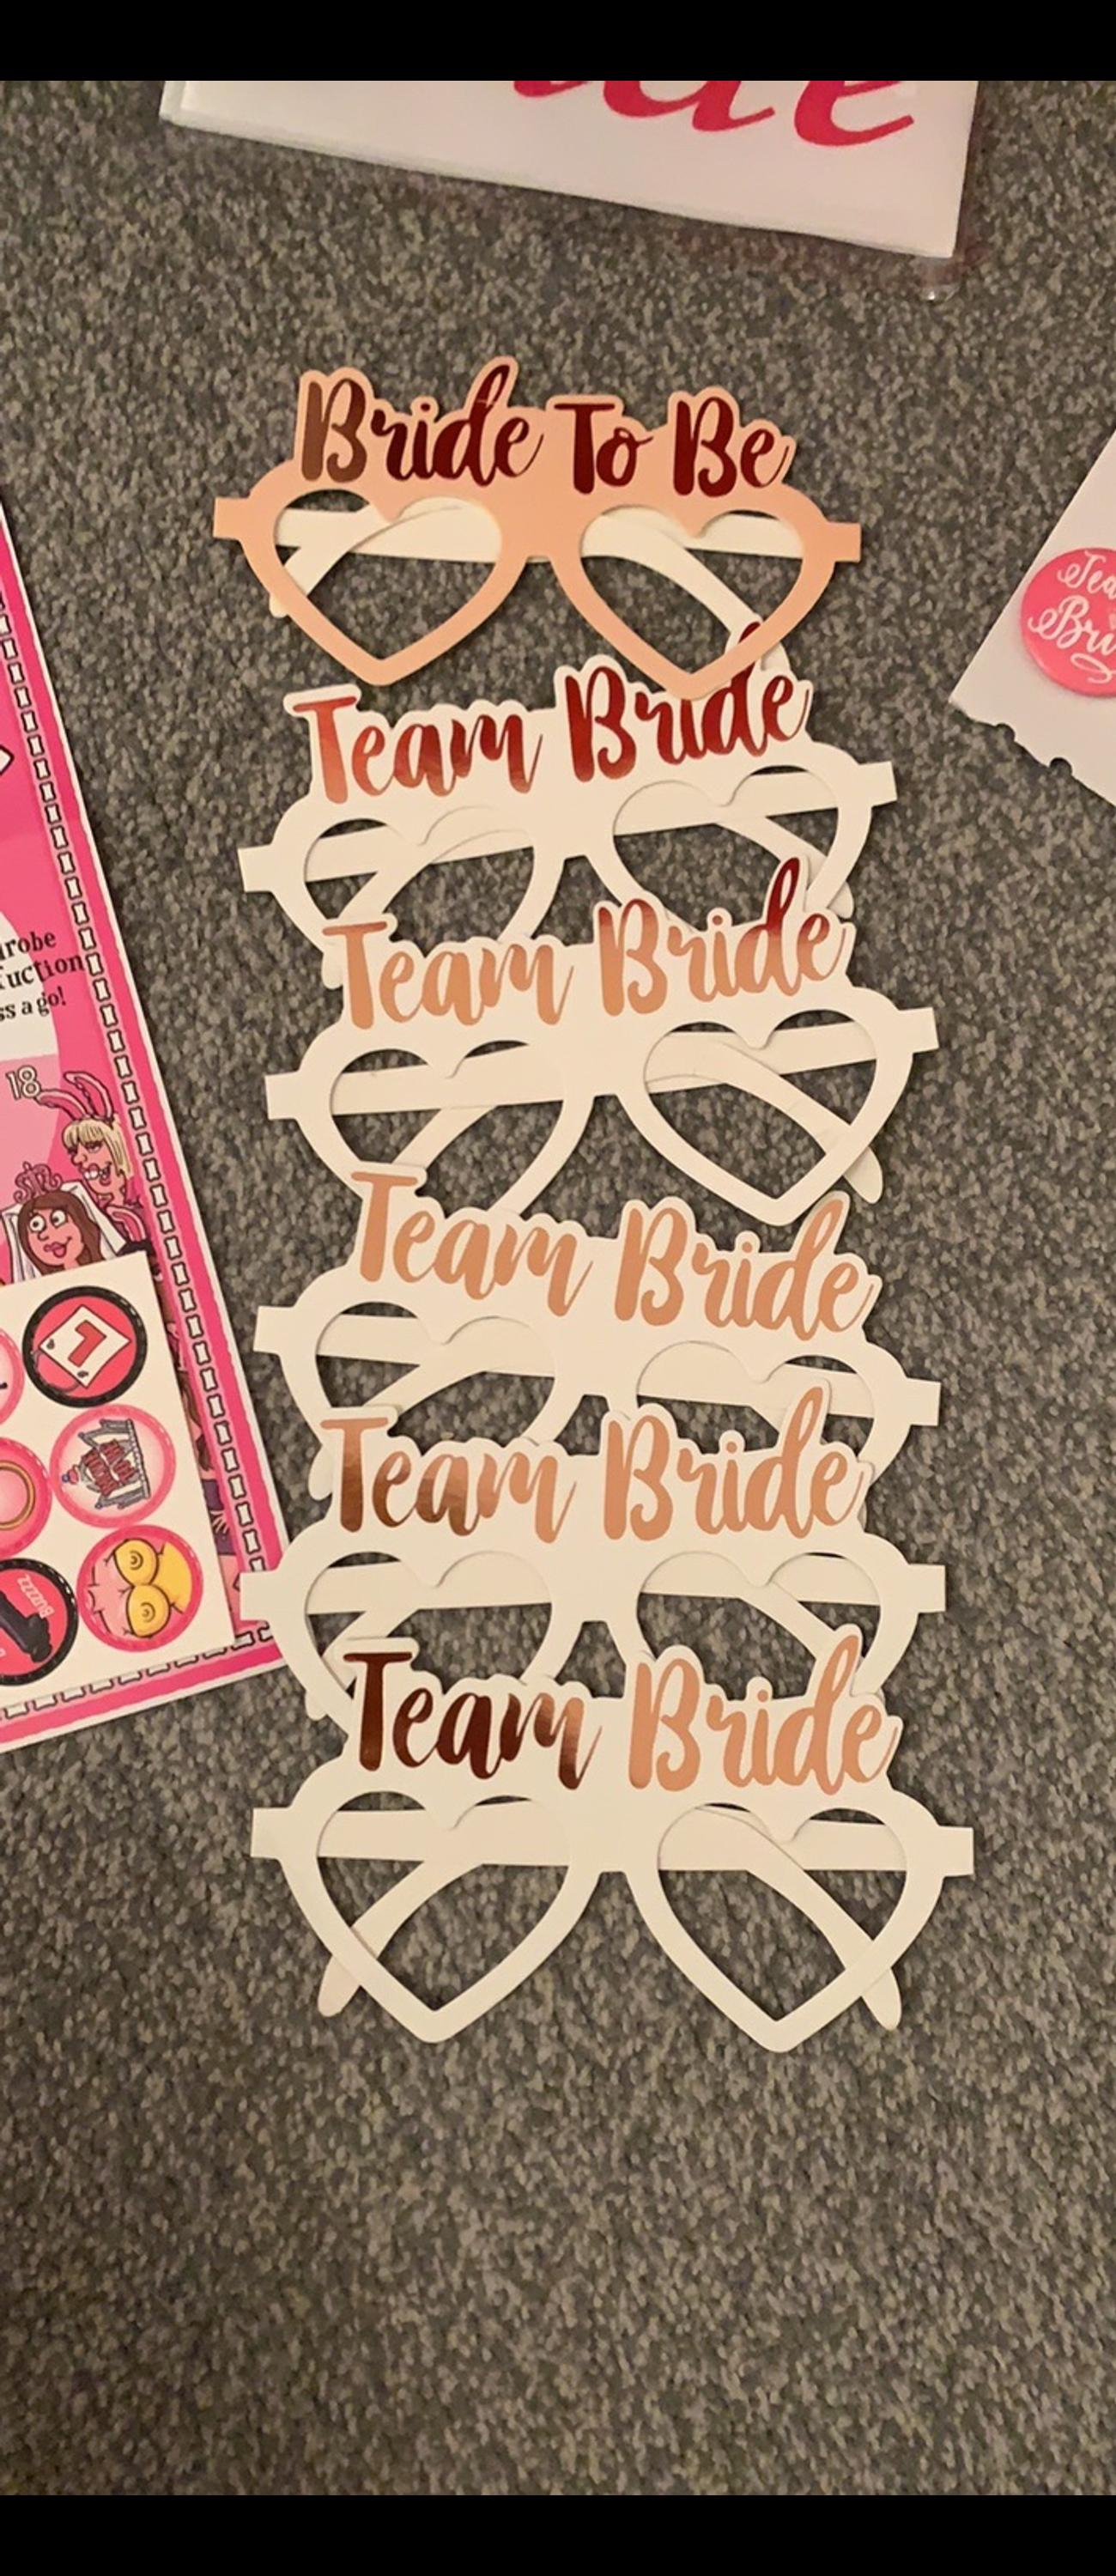 Hen do accessories included: - Photobooth props - Quiz - Dare cards - Willies and ladders games - Bride to be and 5 team bride glasses - 3 Team bride badges - Bride to be sash - Bunting